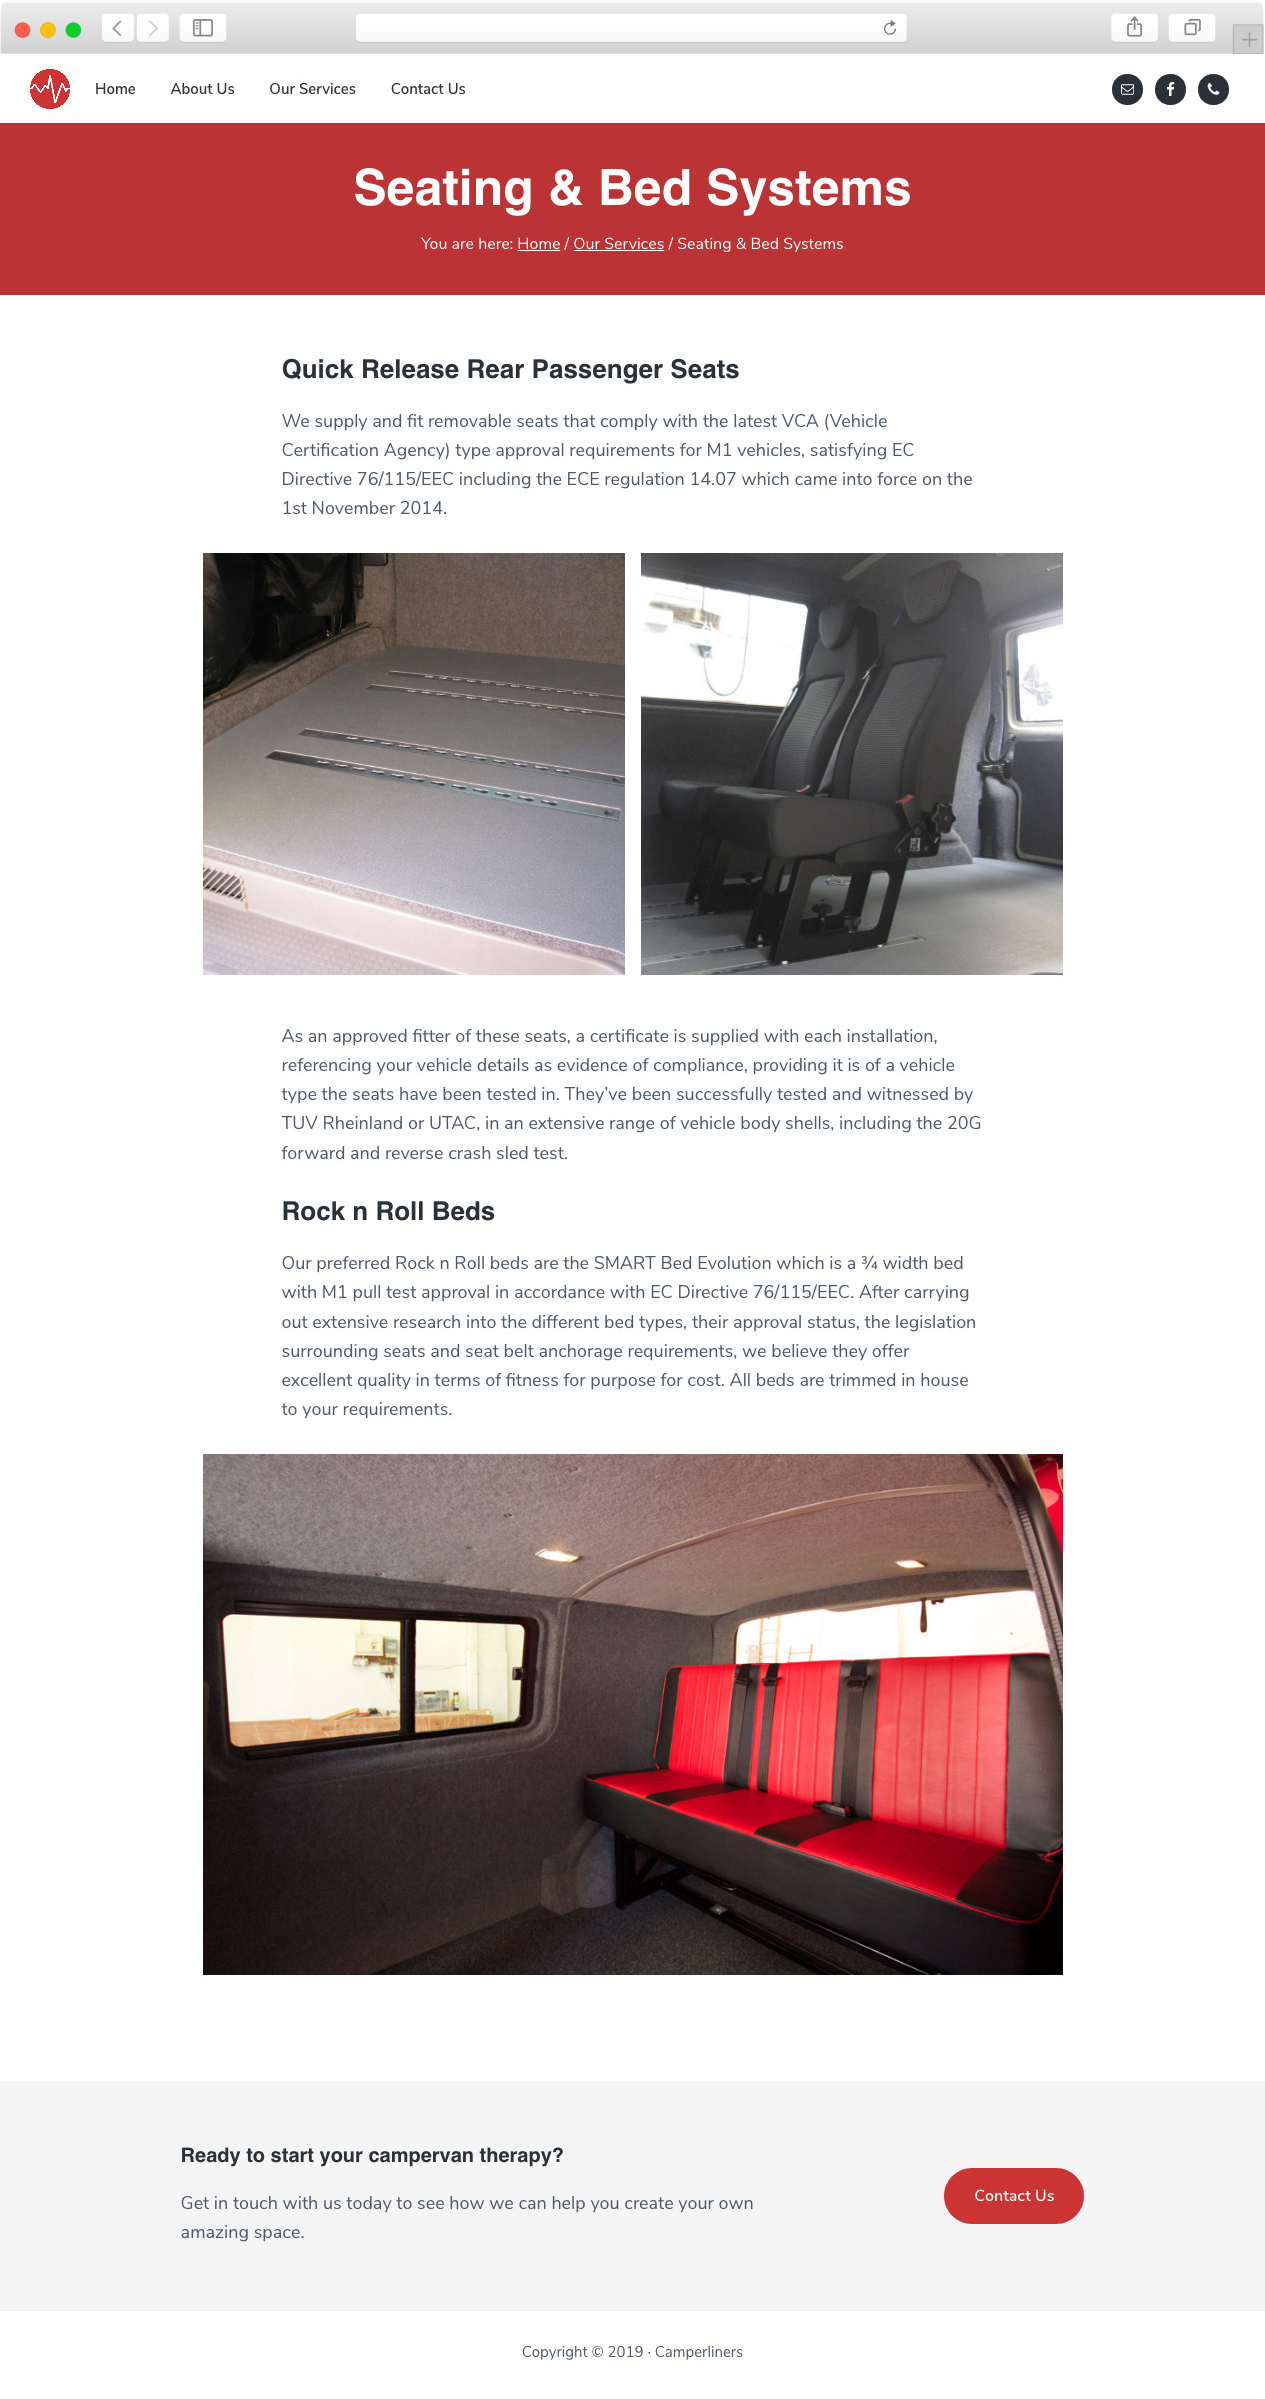 Camperliners website services page.